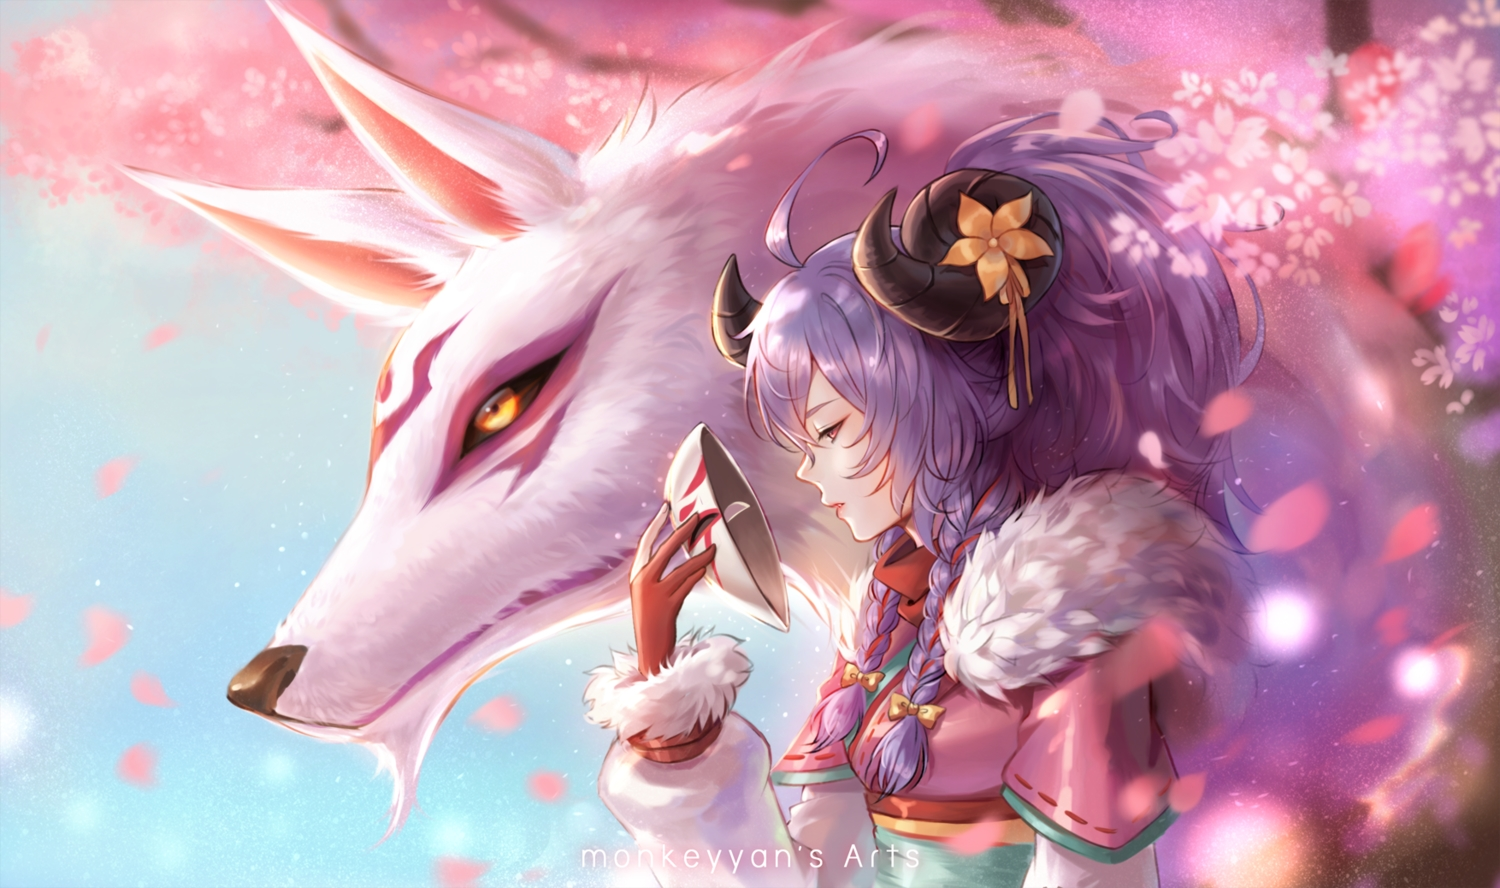 animal braids cherry_blossoms flowers gloves hoodie horns japanese_clothes kindred league_of_legends long_hair mask petals ponytail purple_hair red_eyes watermark wolf yan_wong